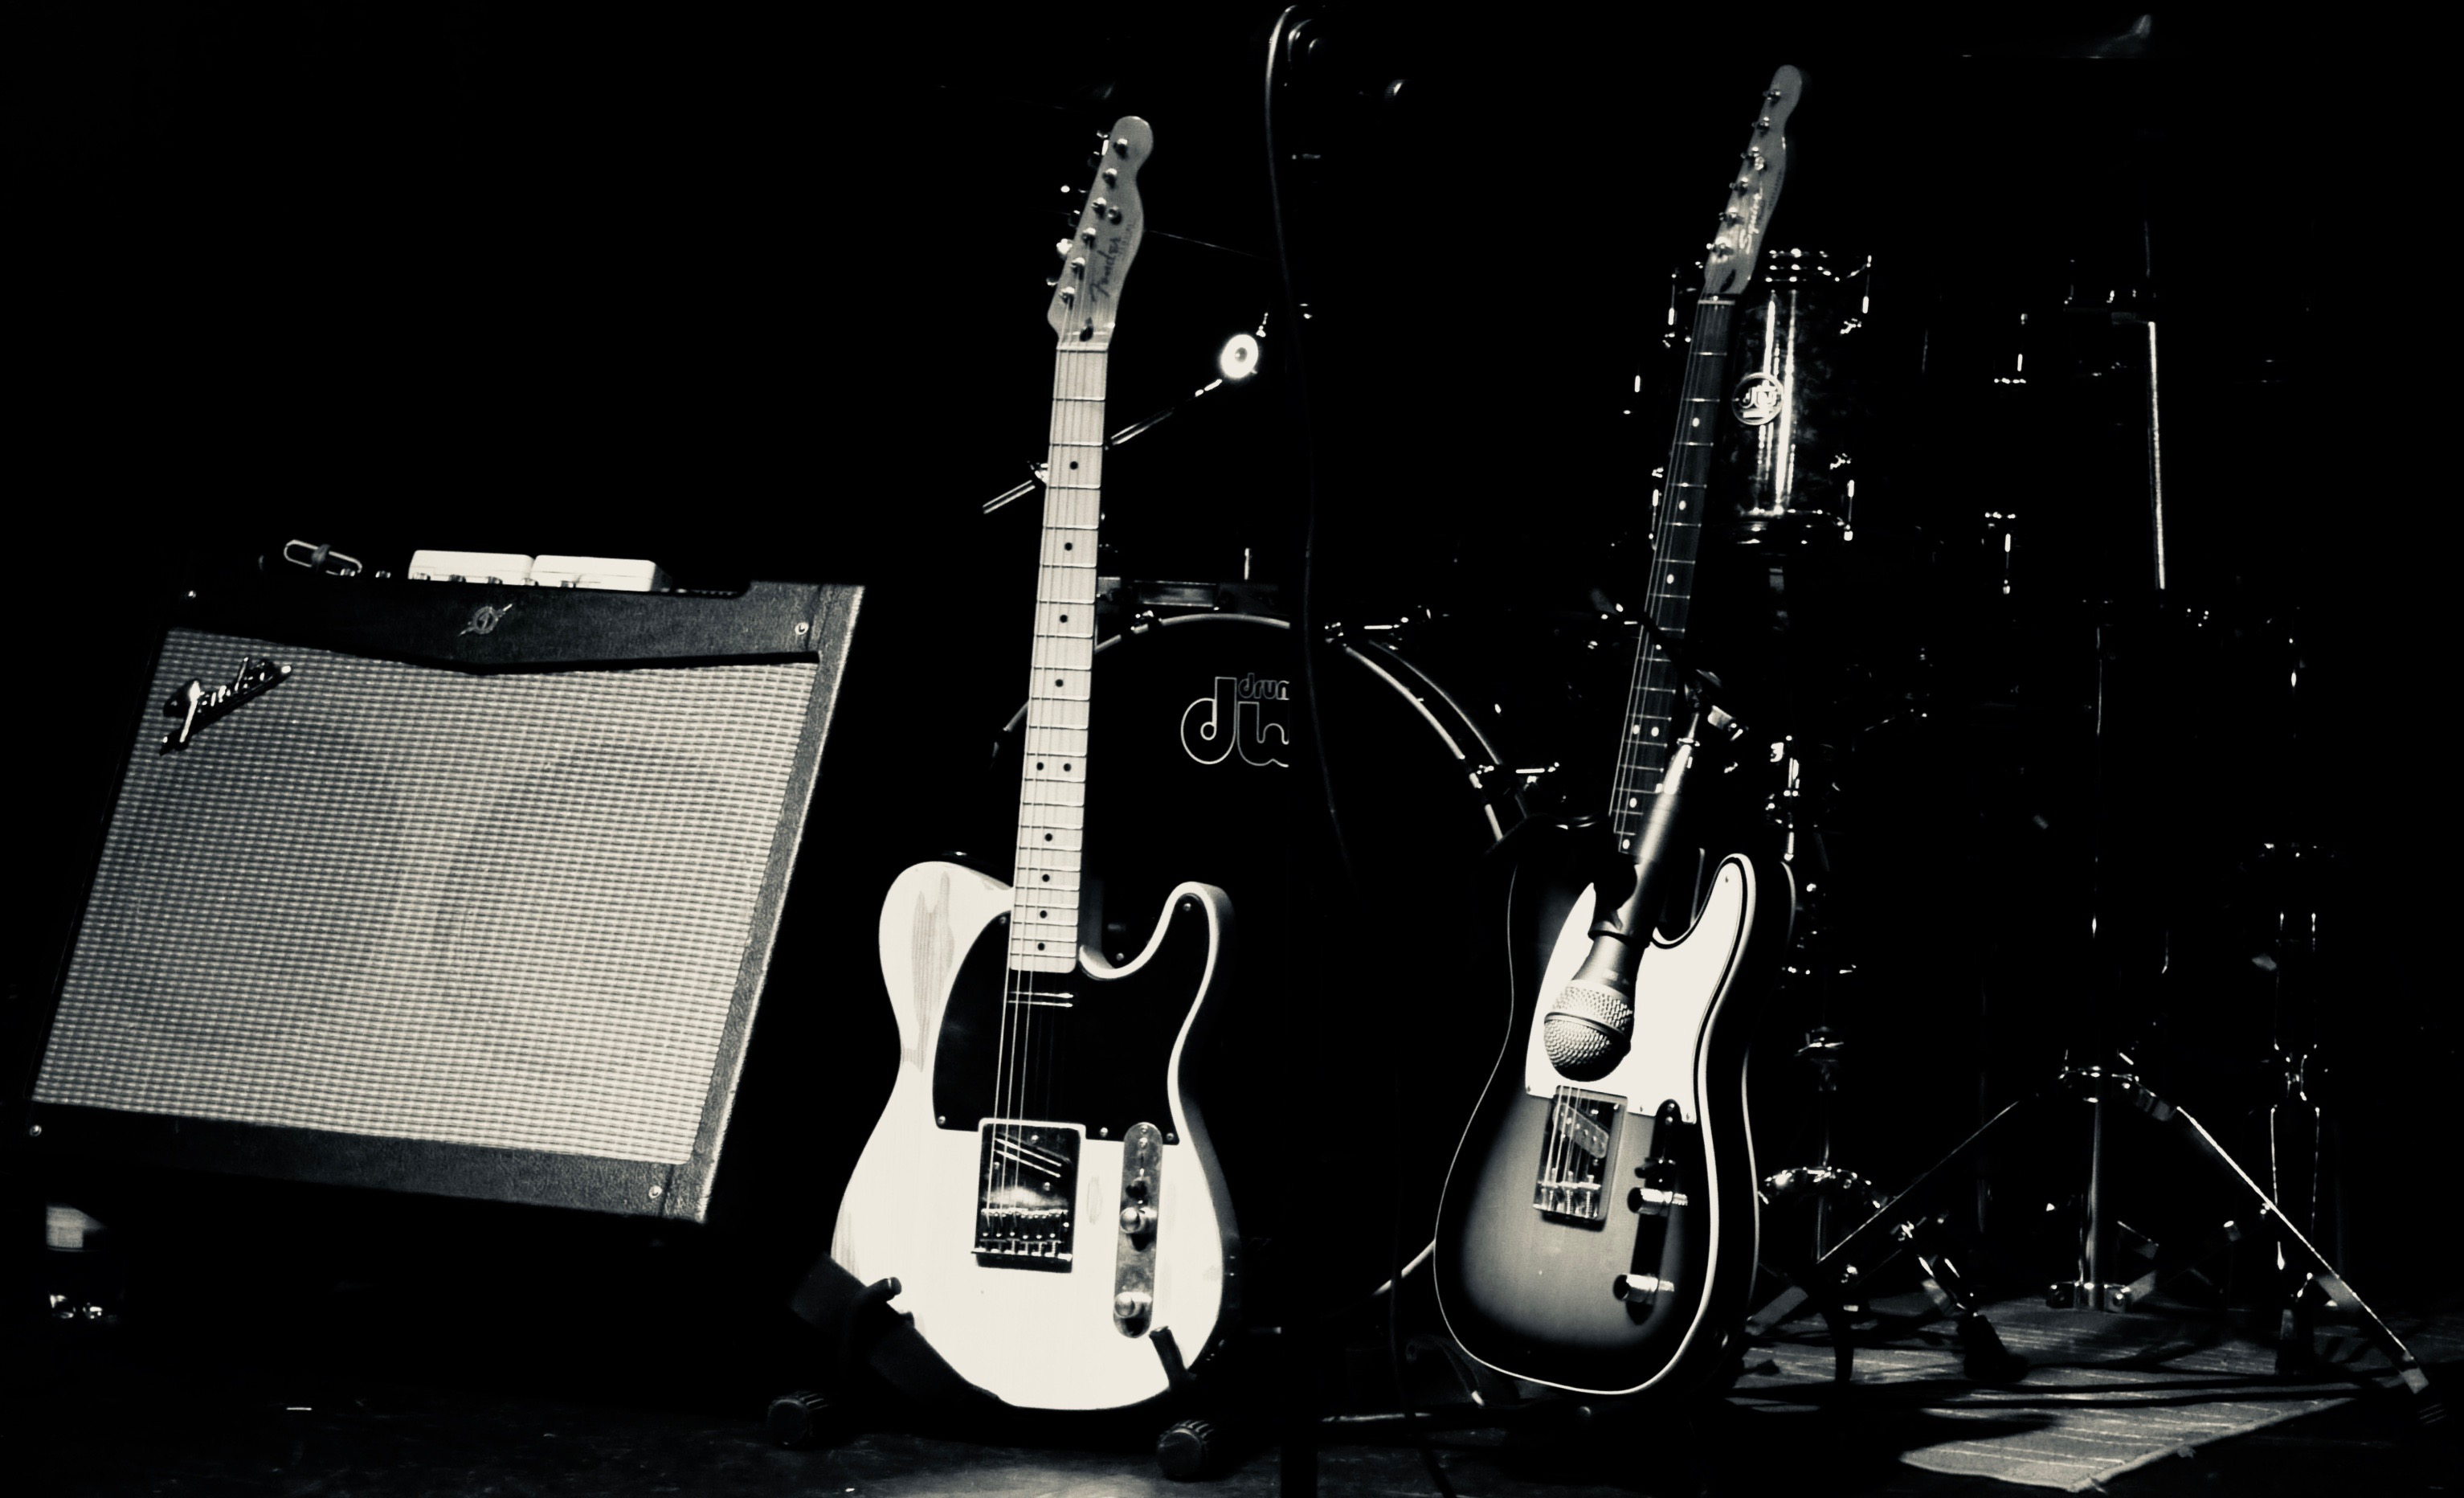 BB B&W Guitars 061018